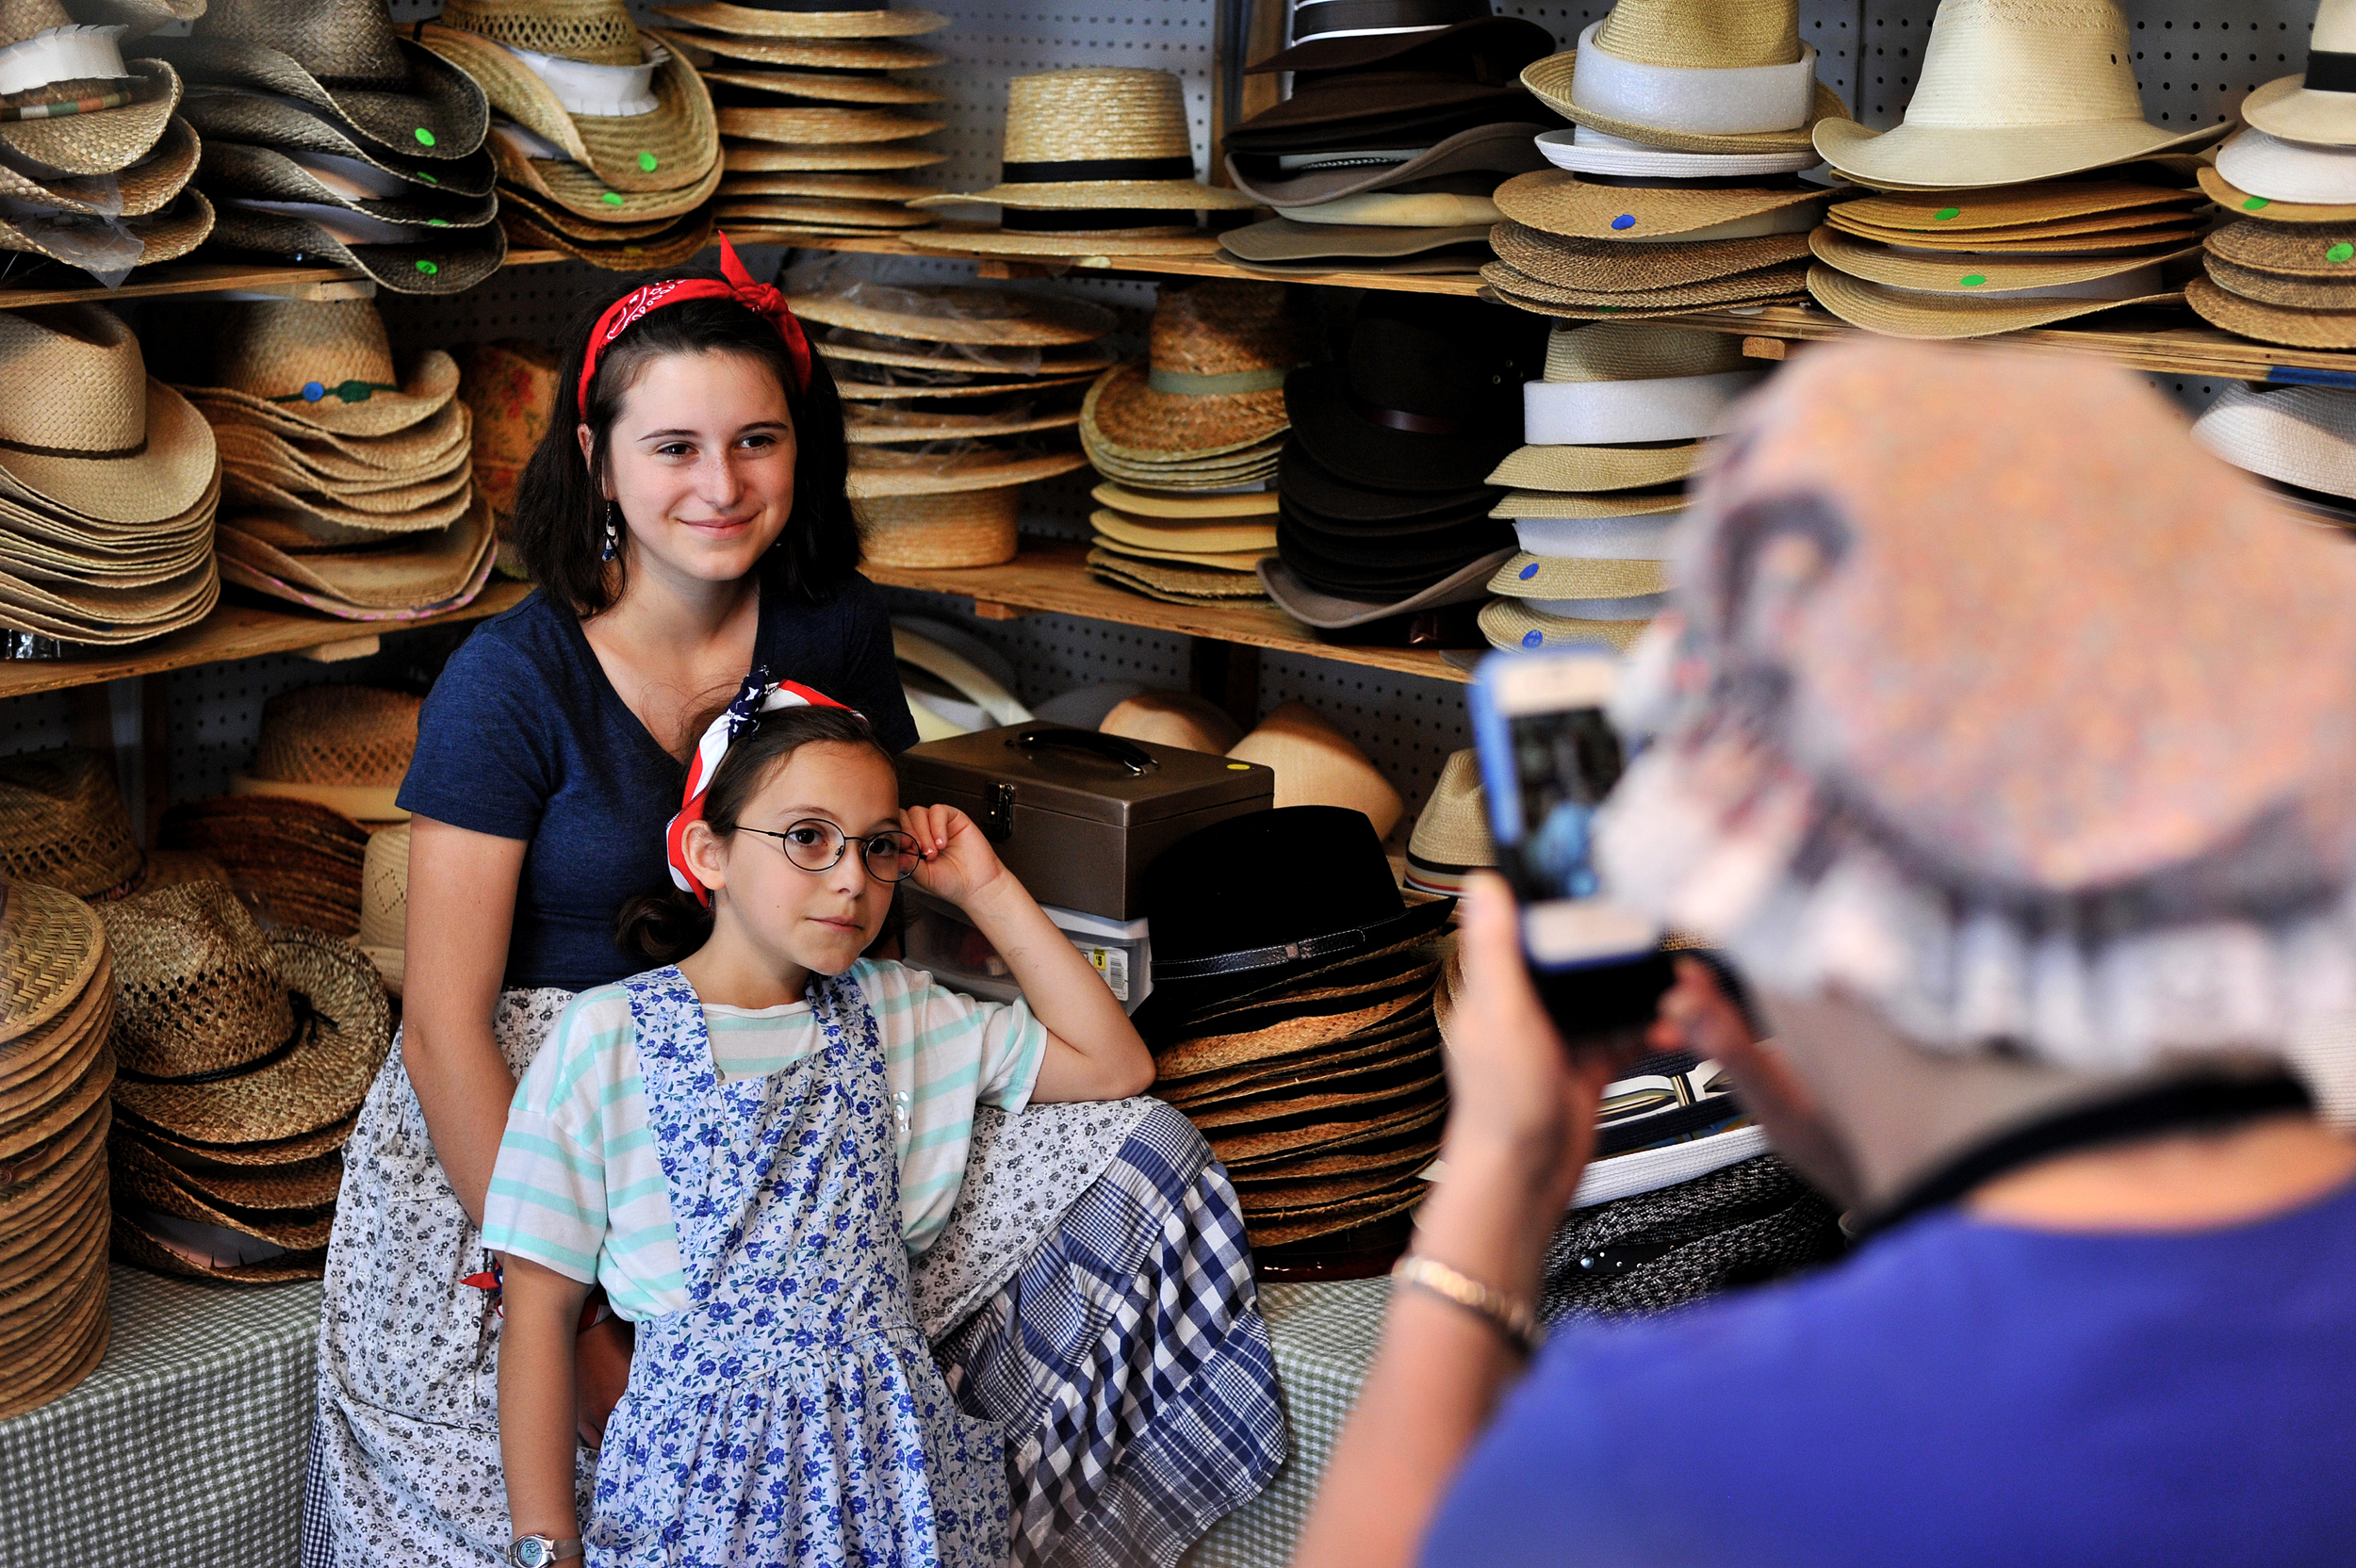 Andrea Neulight of Allentown takes a photo of her granddaughters Olivia Neulight, 13, and Journey Neulight, 10, of Venice, California, at the Kutztown Folk Festival in Kutztown, PA, on July 4, 2016. (Reading Eagle: Sarah Stier)